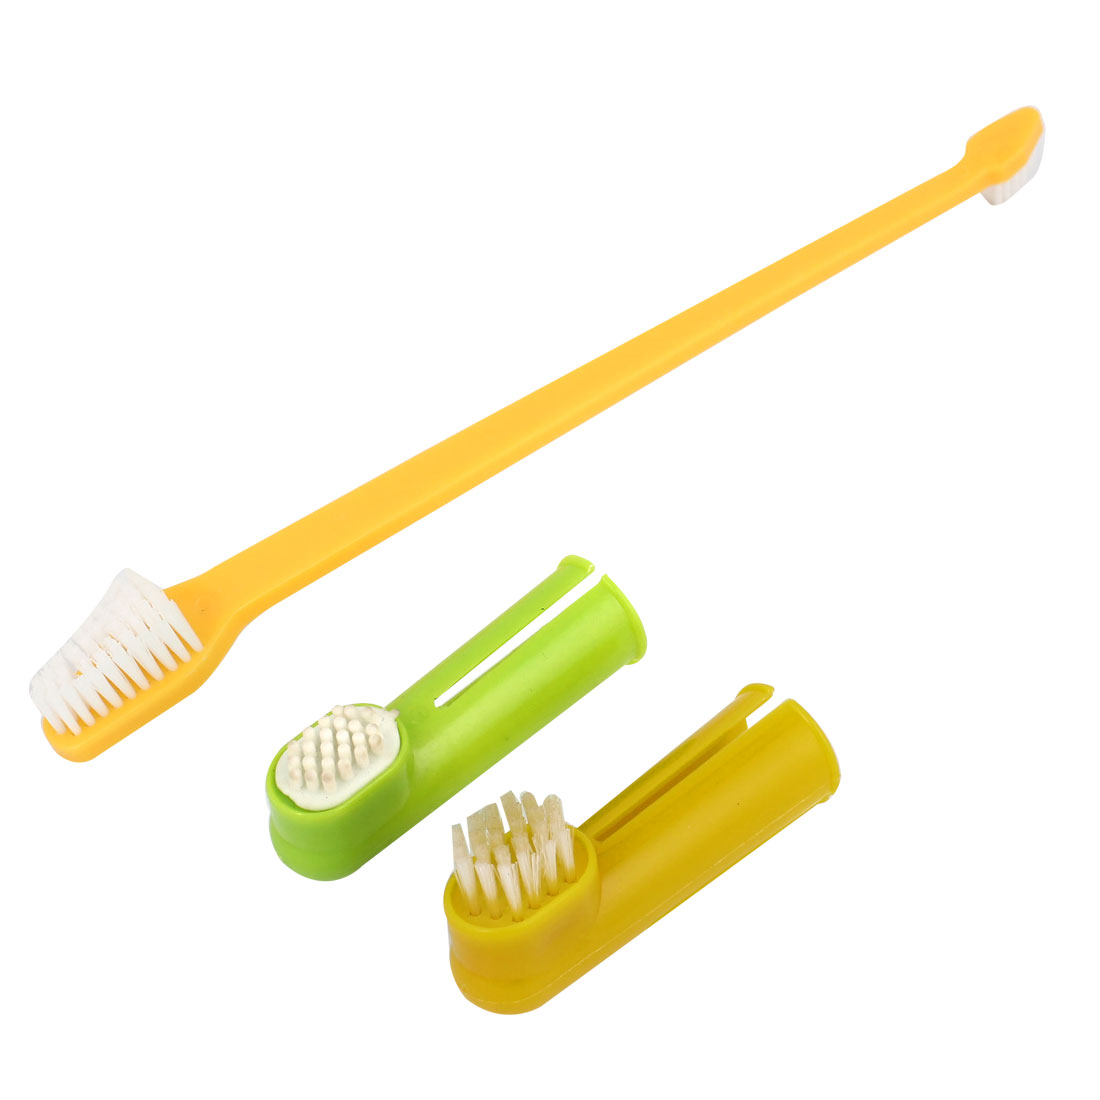 3 in 1 Set Pet Dog Doggy Long Handle Dual Headed Tooth Bristle Brush Finger Brushes Green Yellow